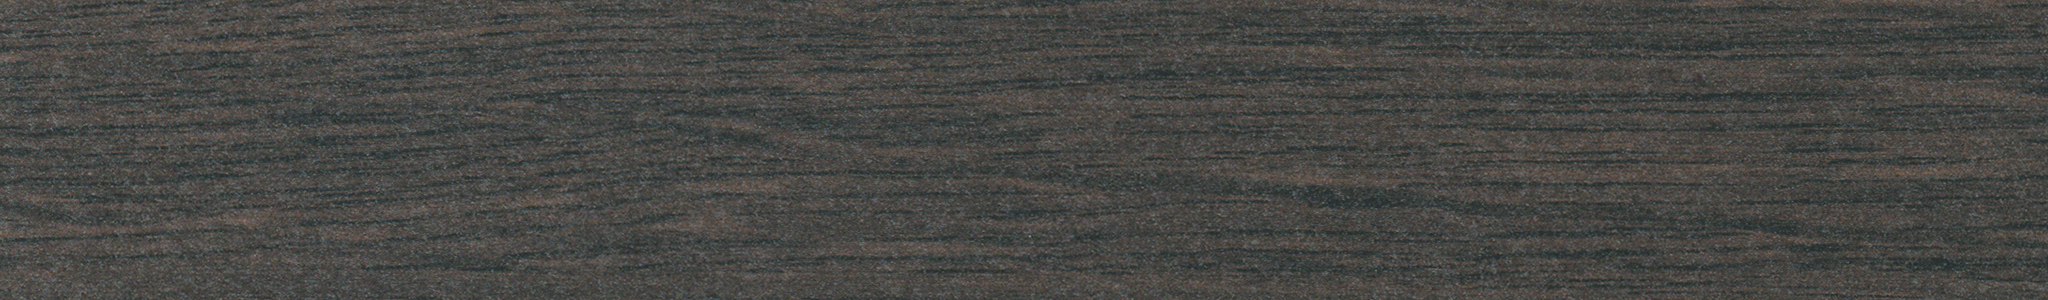 HD 685178 Melamine Edge FALZ Wenge Smooth